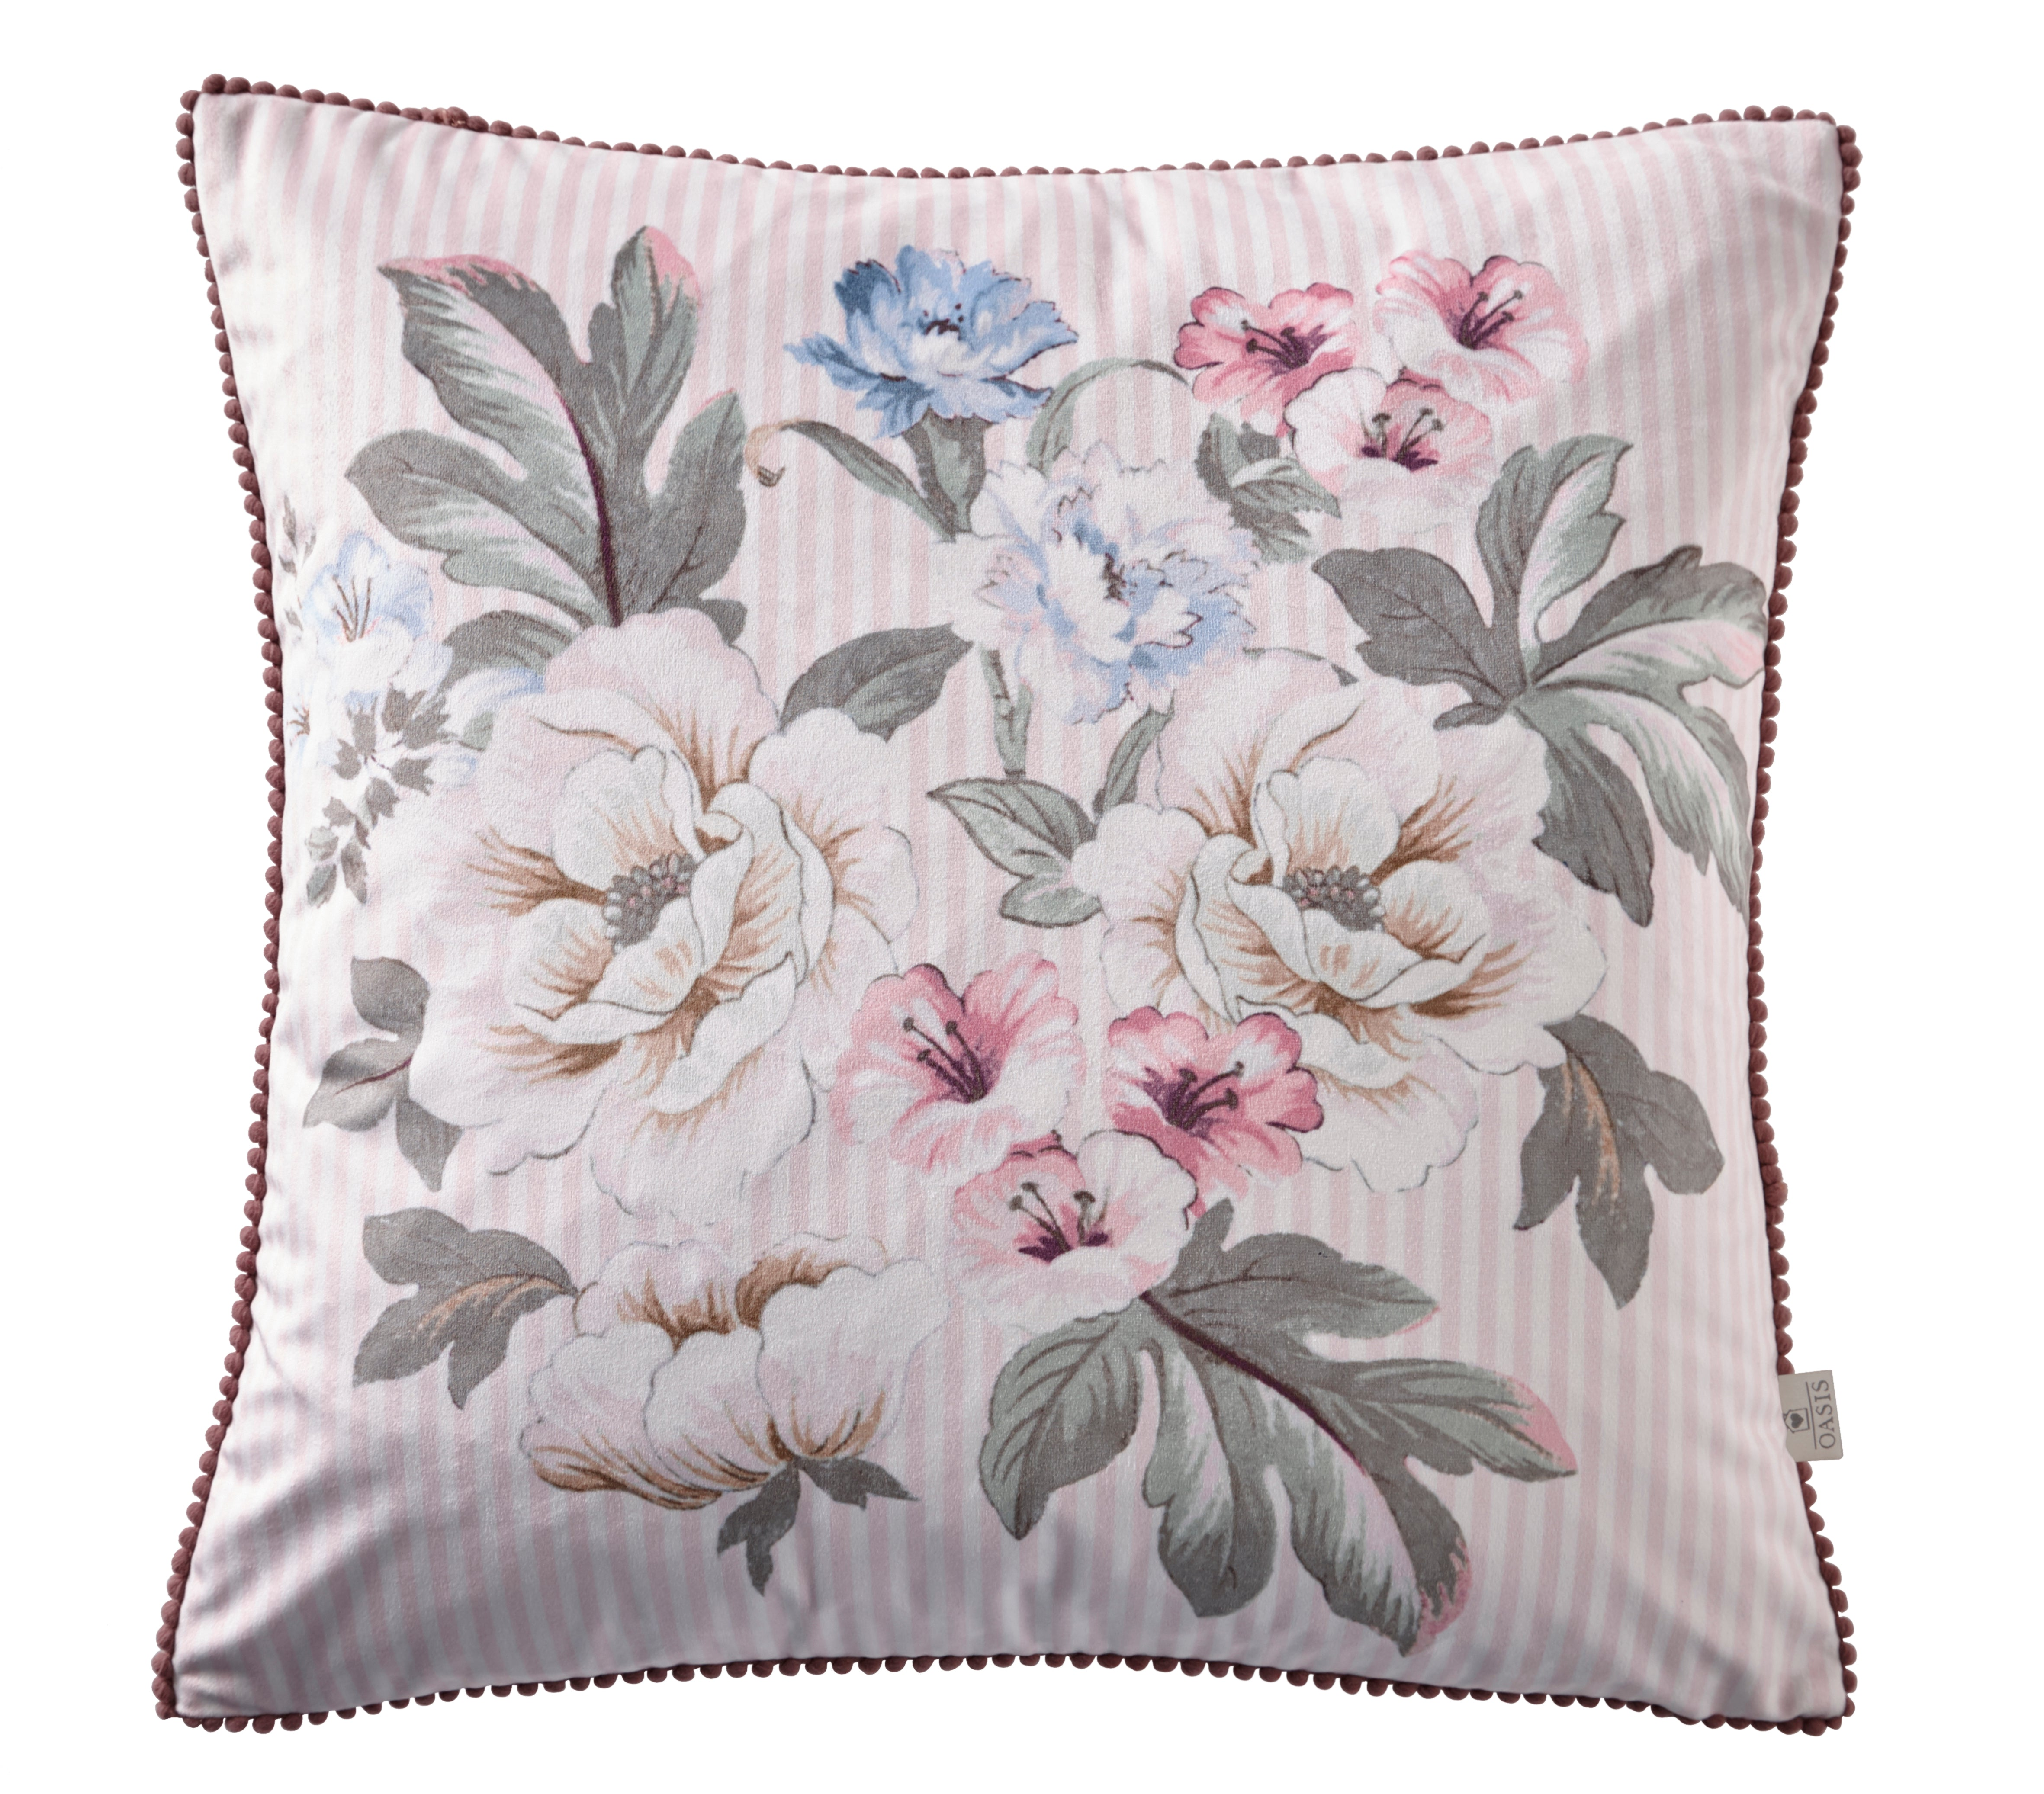 Oasis Designer 'Bailey' Floral Cushion | Blush Pink & White Stripe - Your 4 Walls